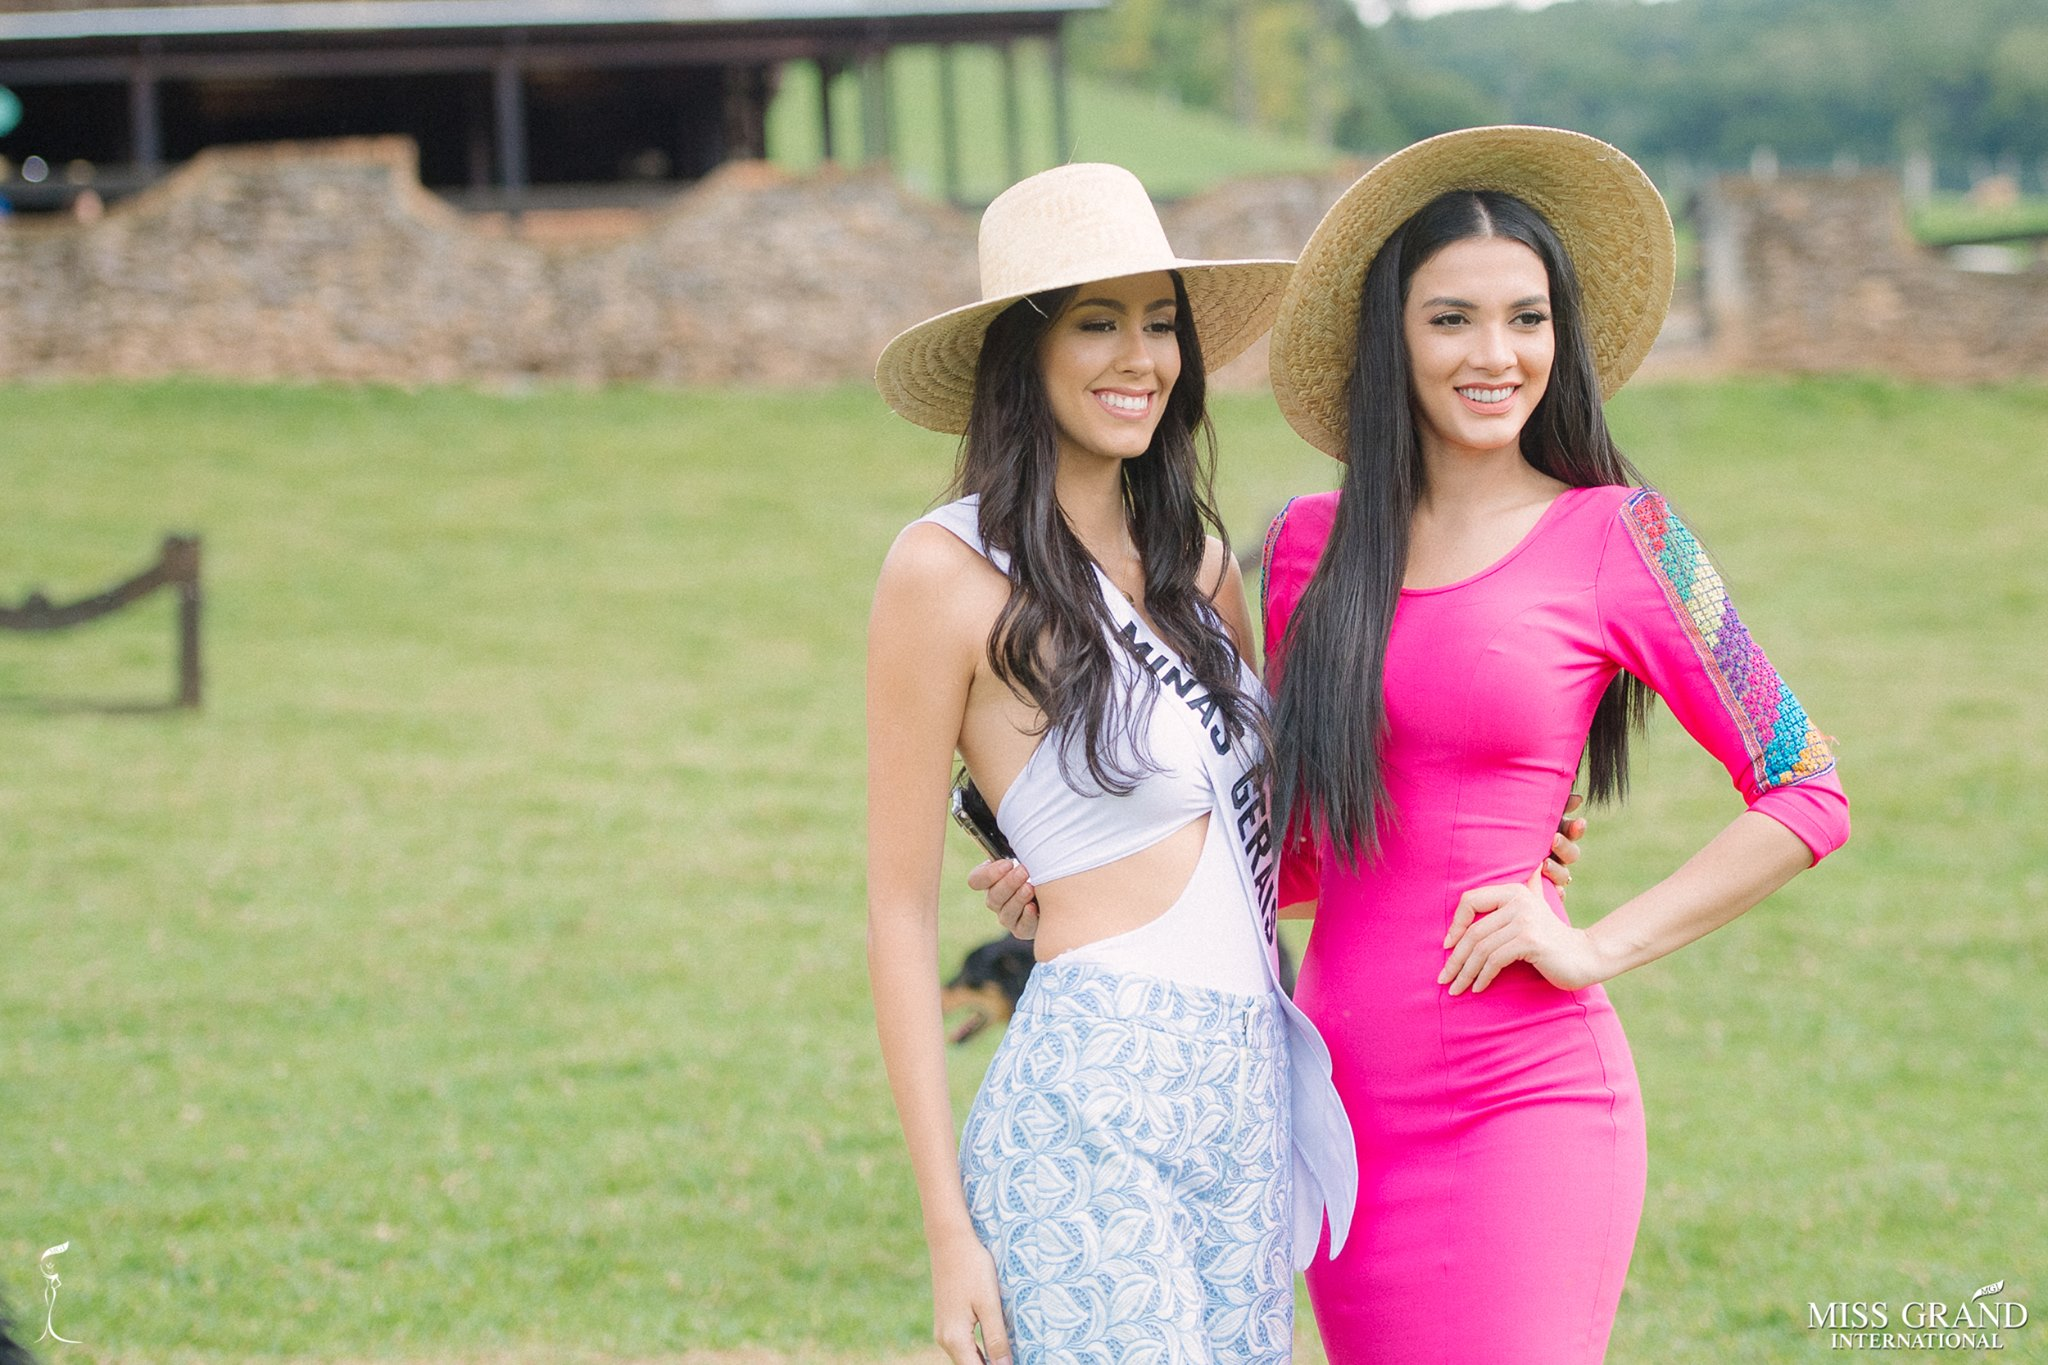 miss grand international 2018 visitando brasil para assistir a final de miss grand brasil 2019. - Página 2 Alex-p60